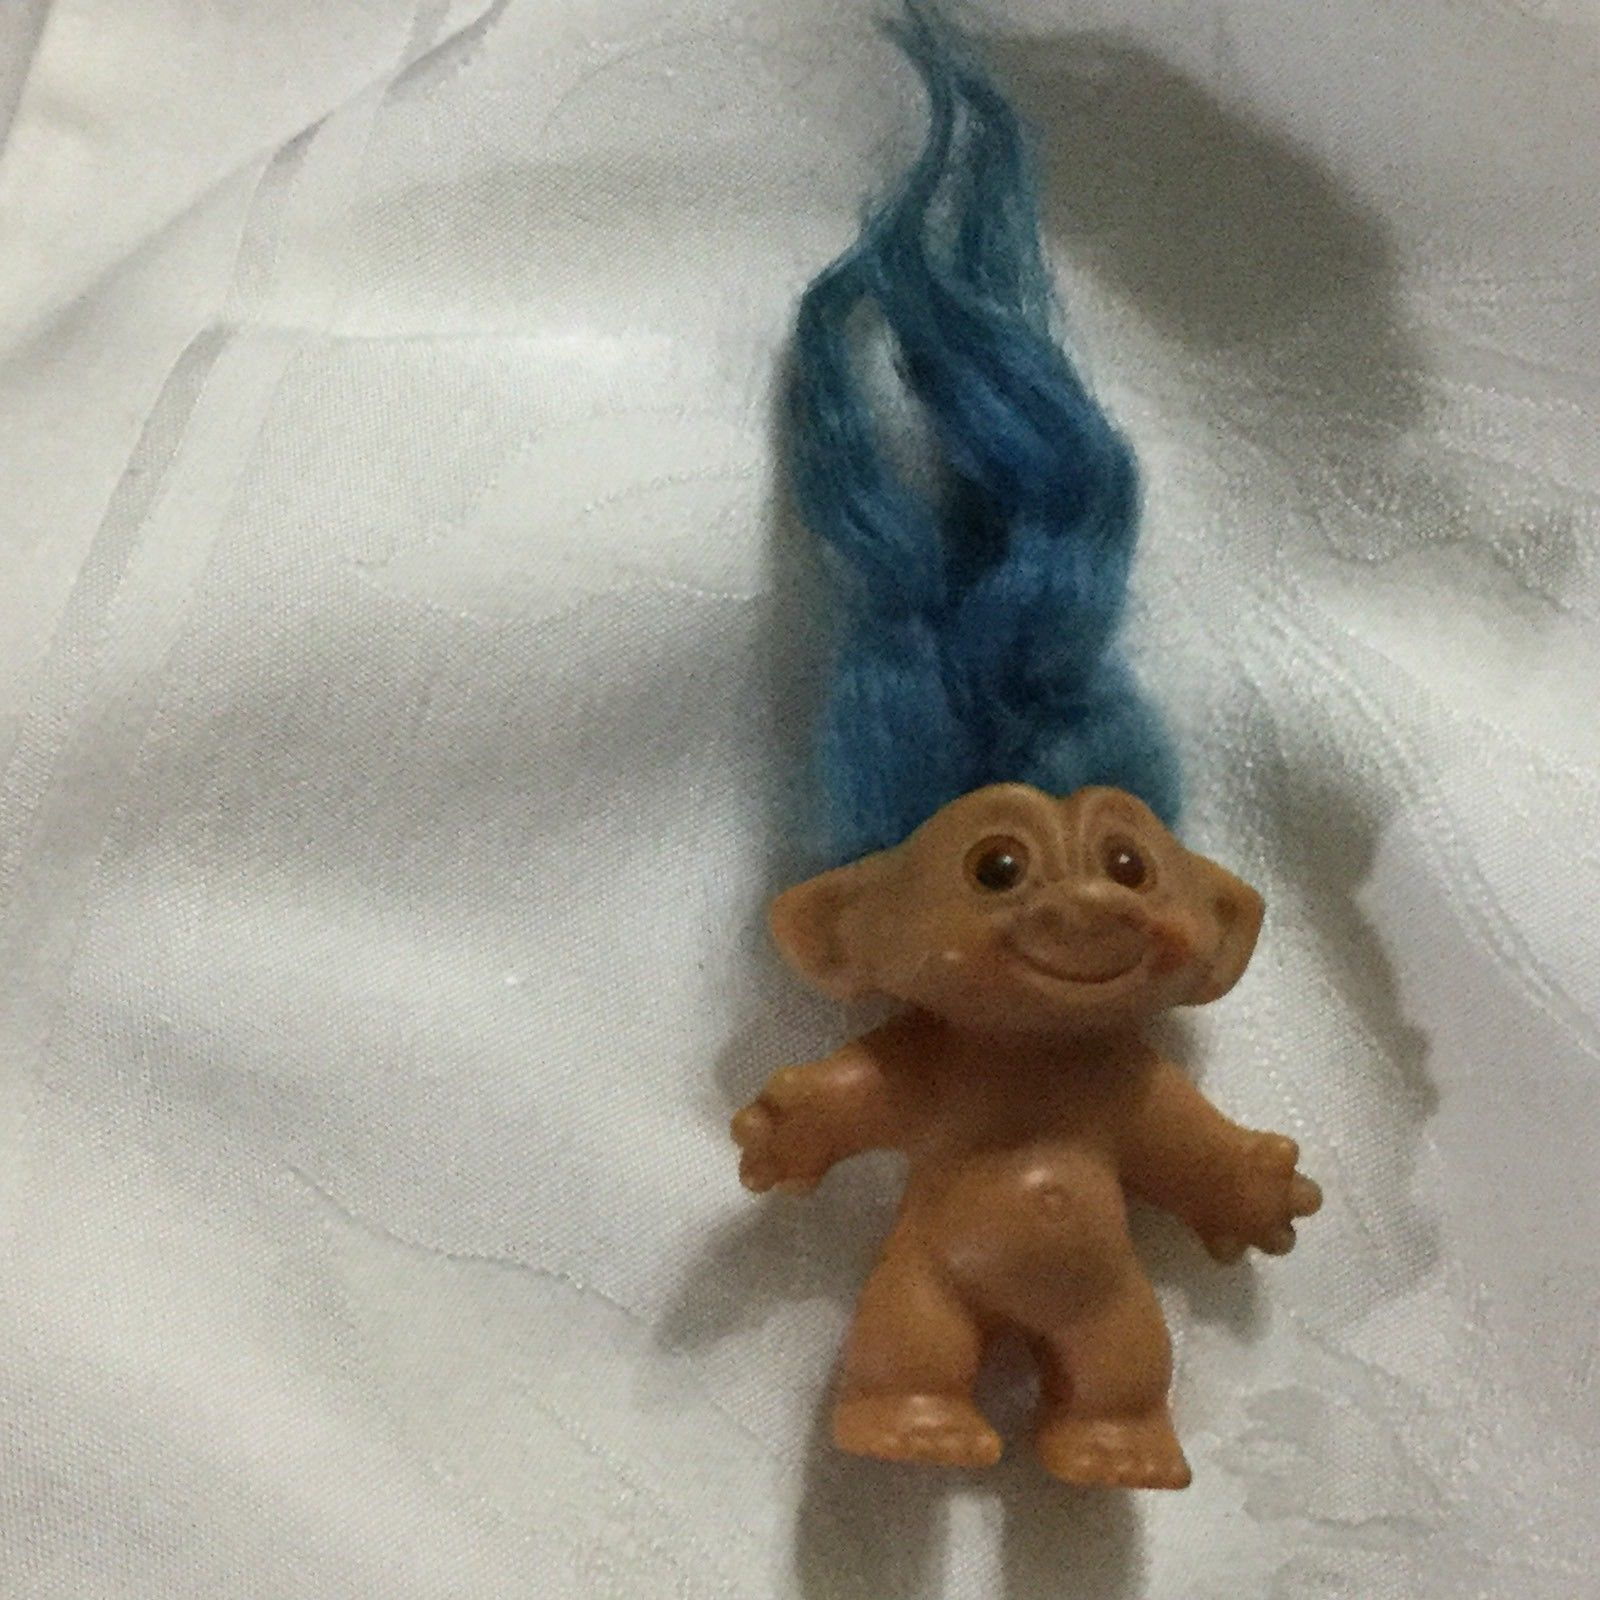 Early Vintage 1960's Blue Hair Wishnik Troll Toy Doll Figure Double Horseshoes